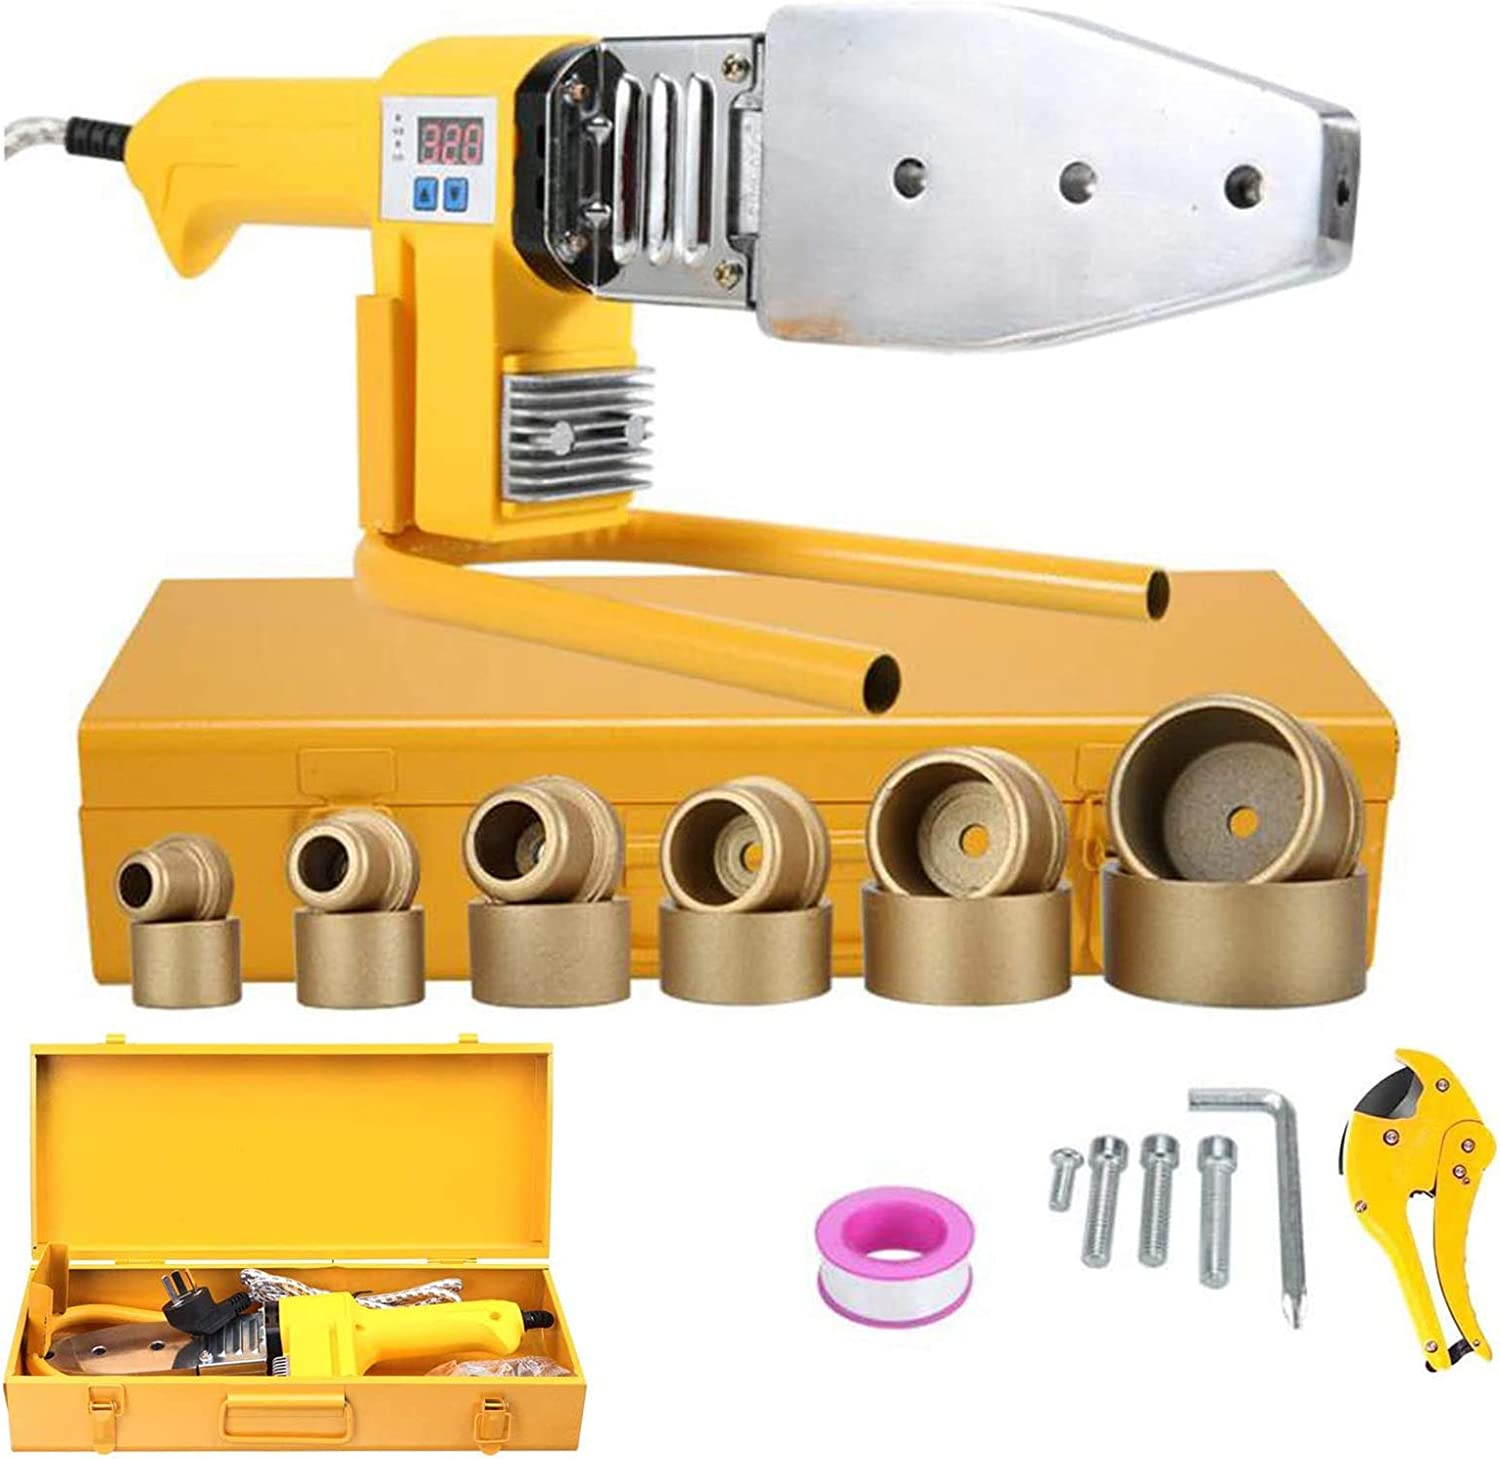 Fusion Max 59% High material OFF Welder Tool Kit PPR 220V Pipe Digital 800W